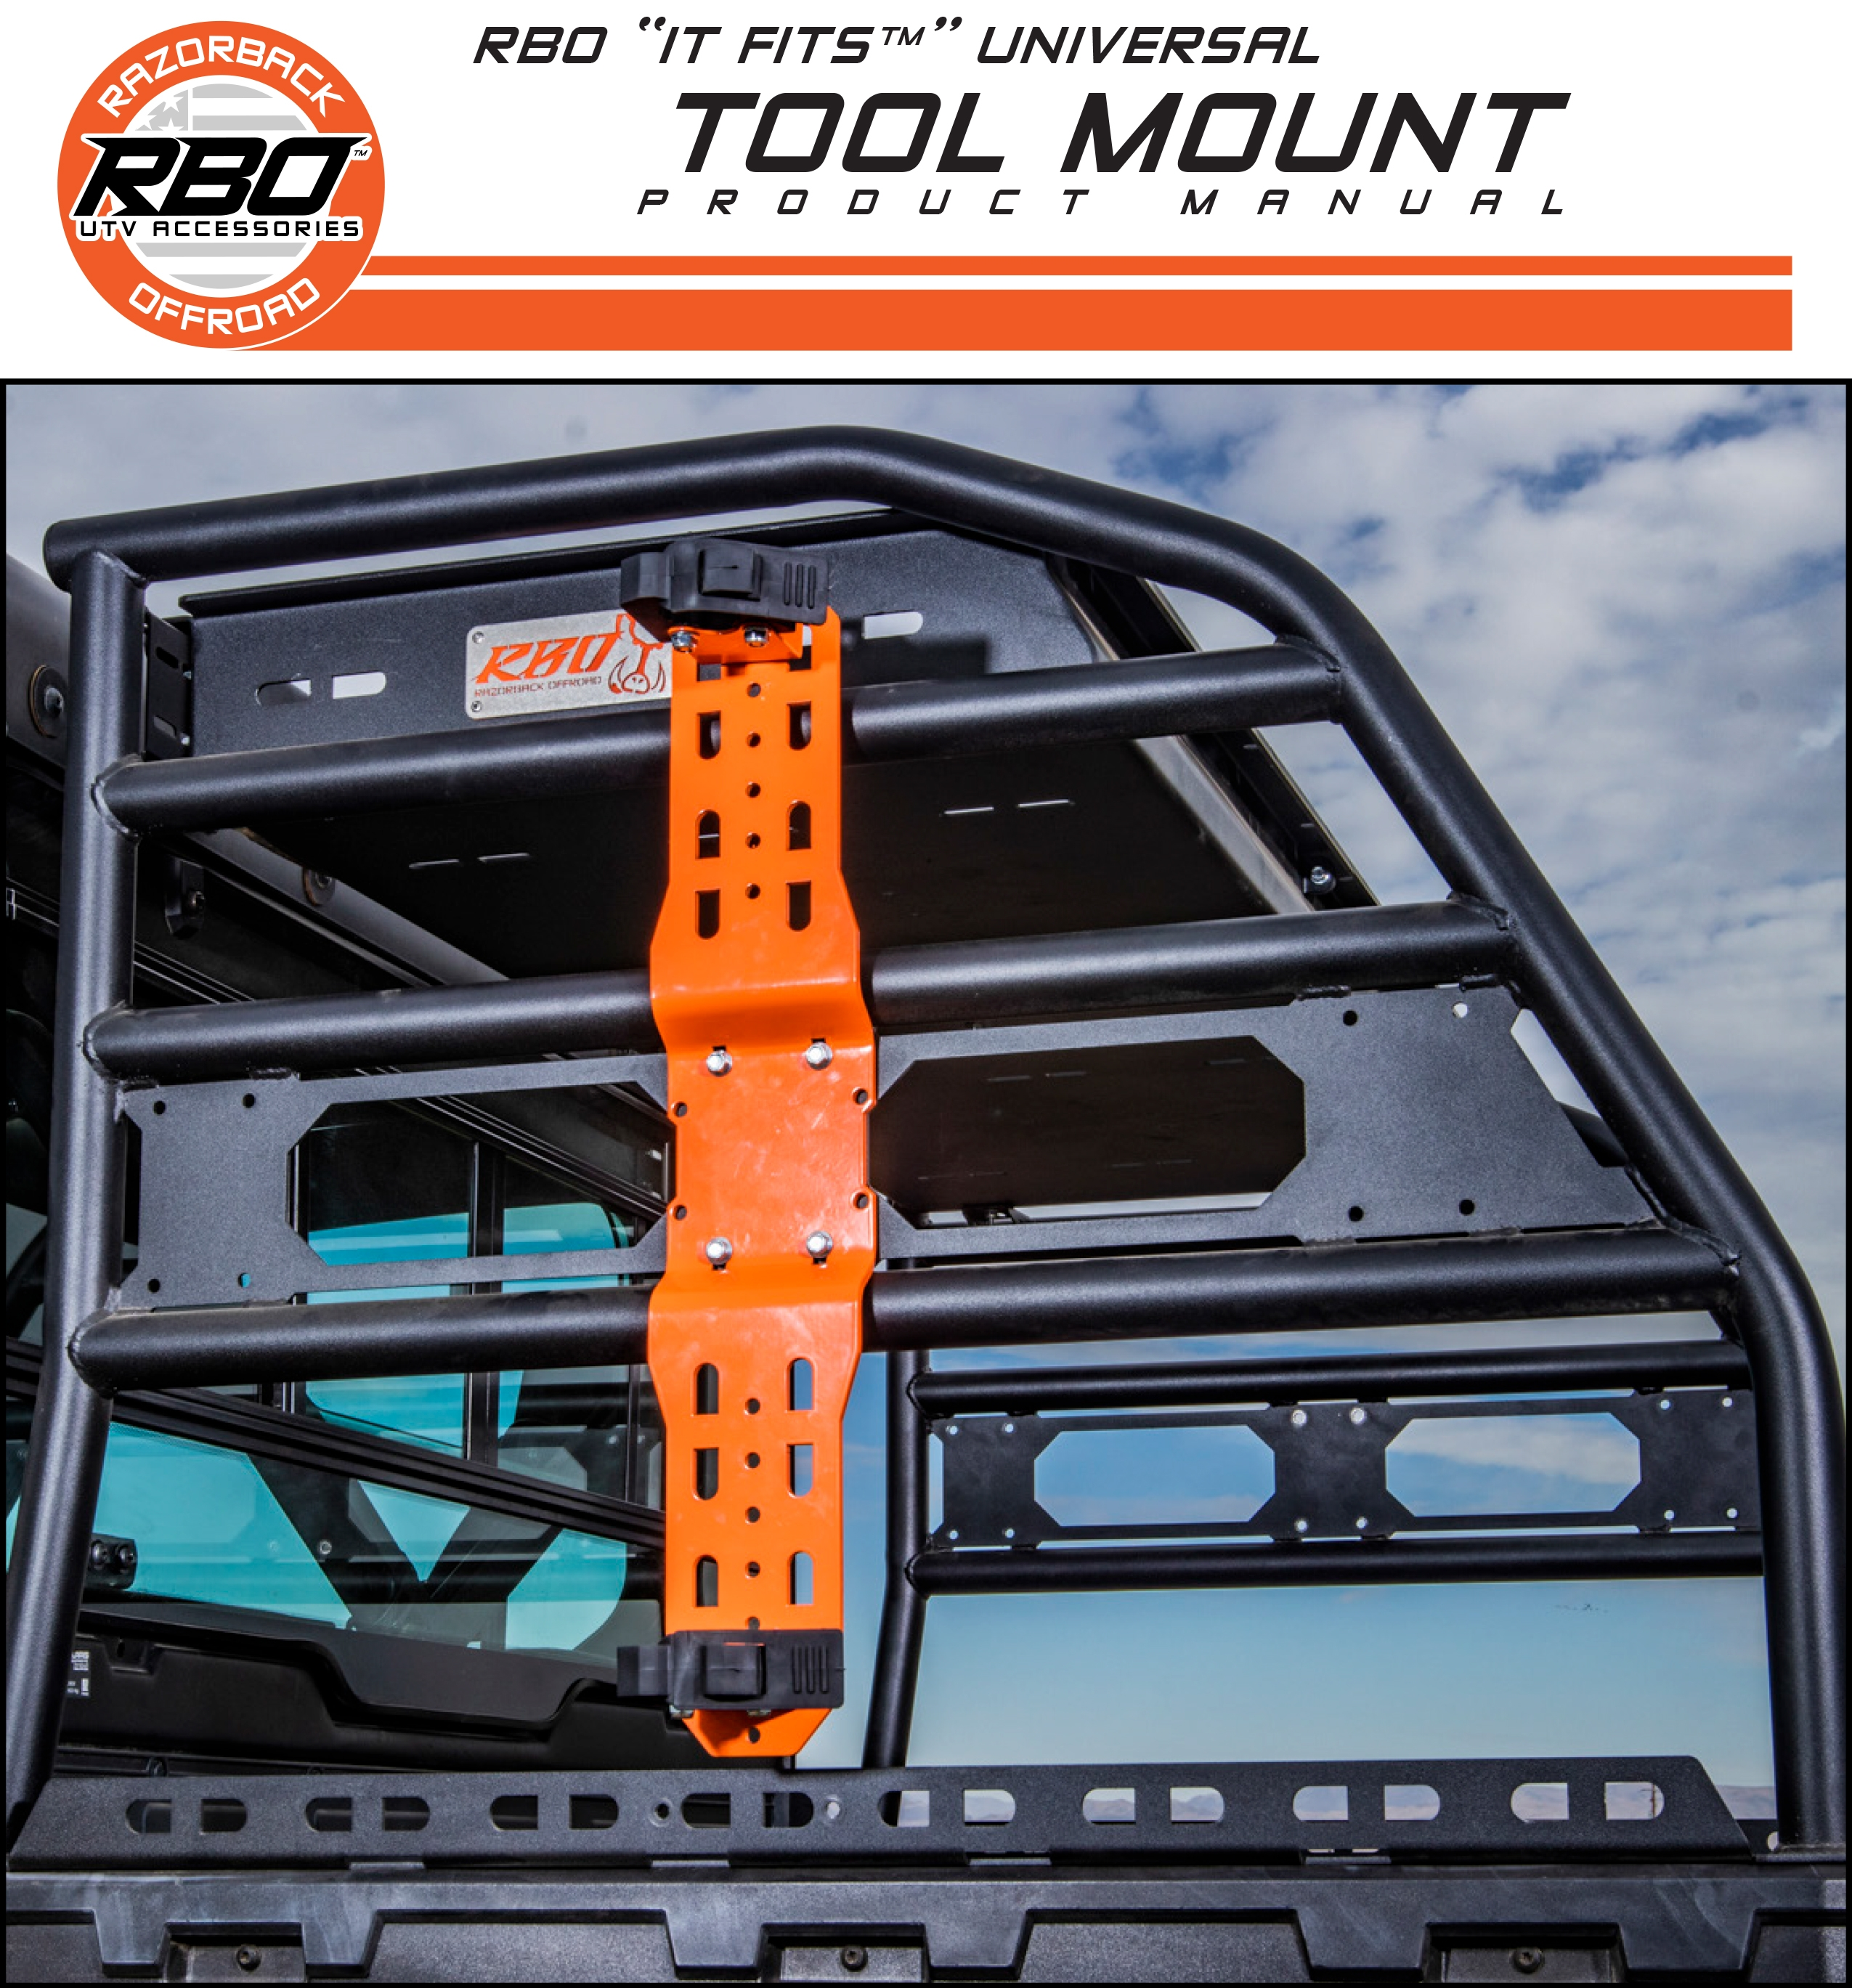 RBO Universal Tool Mount Product Manual